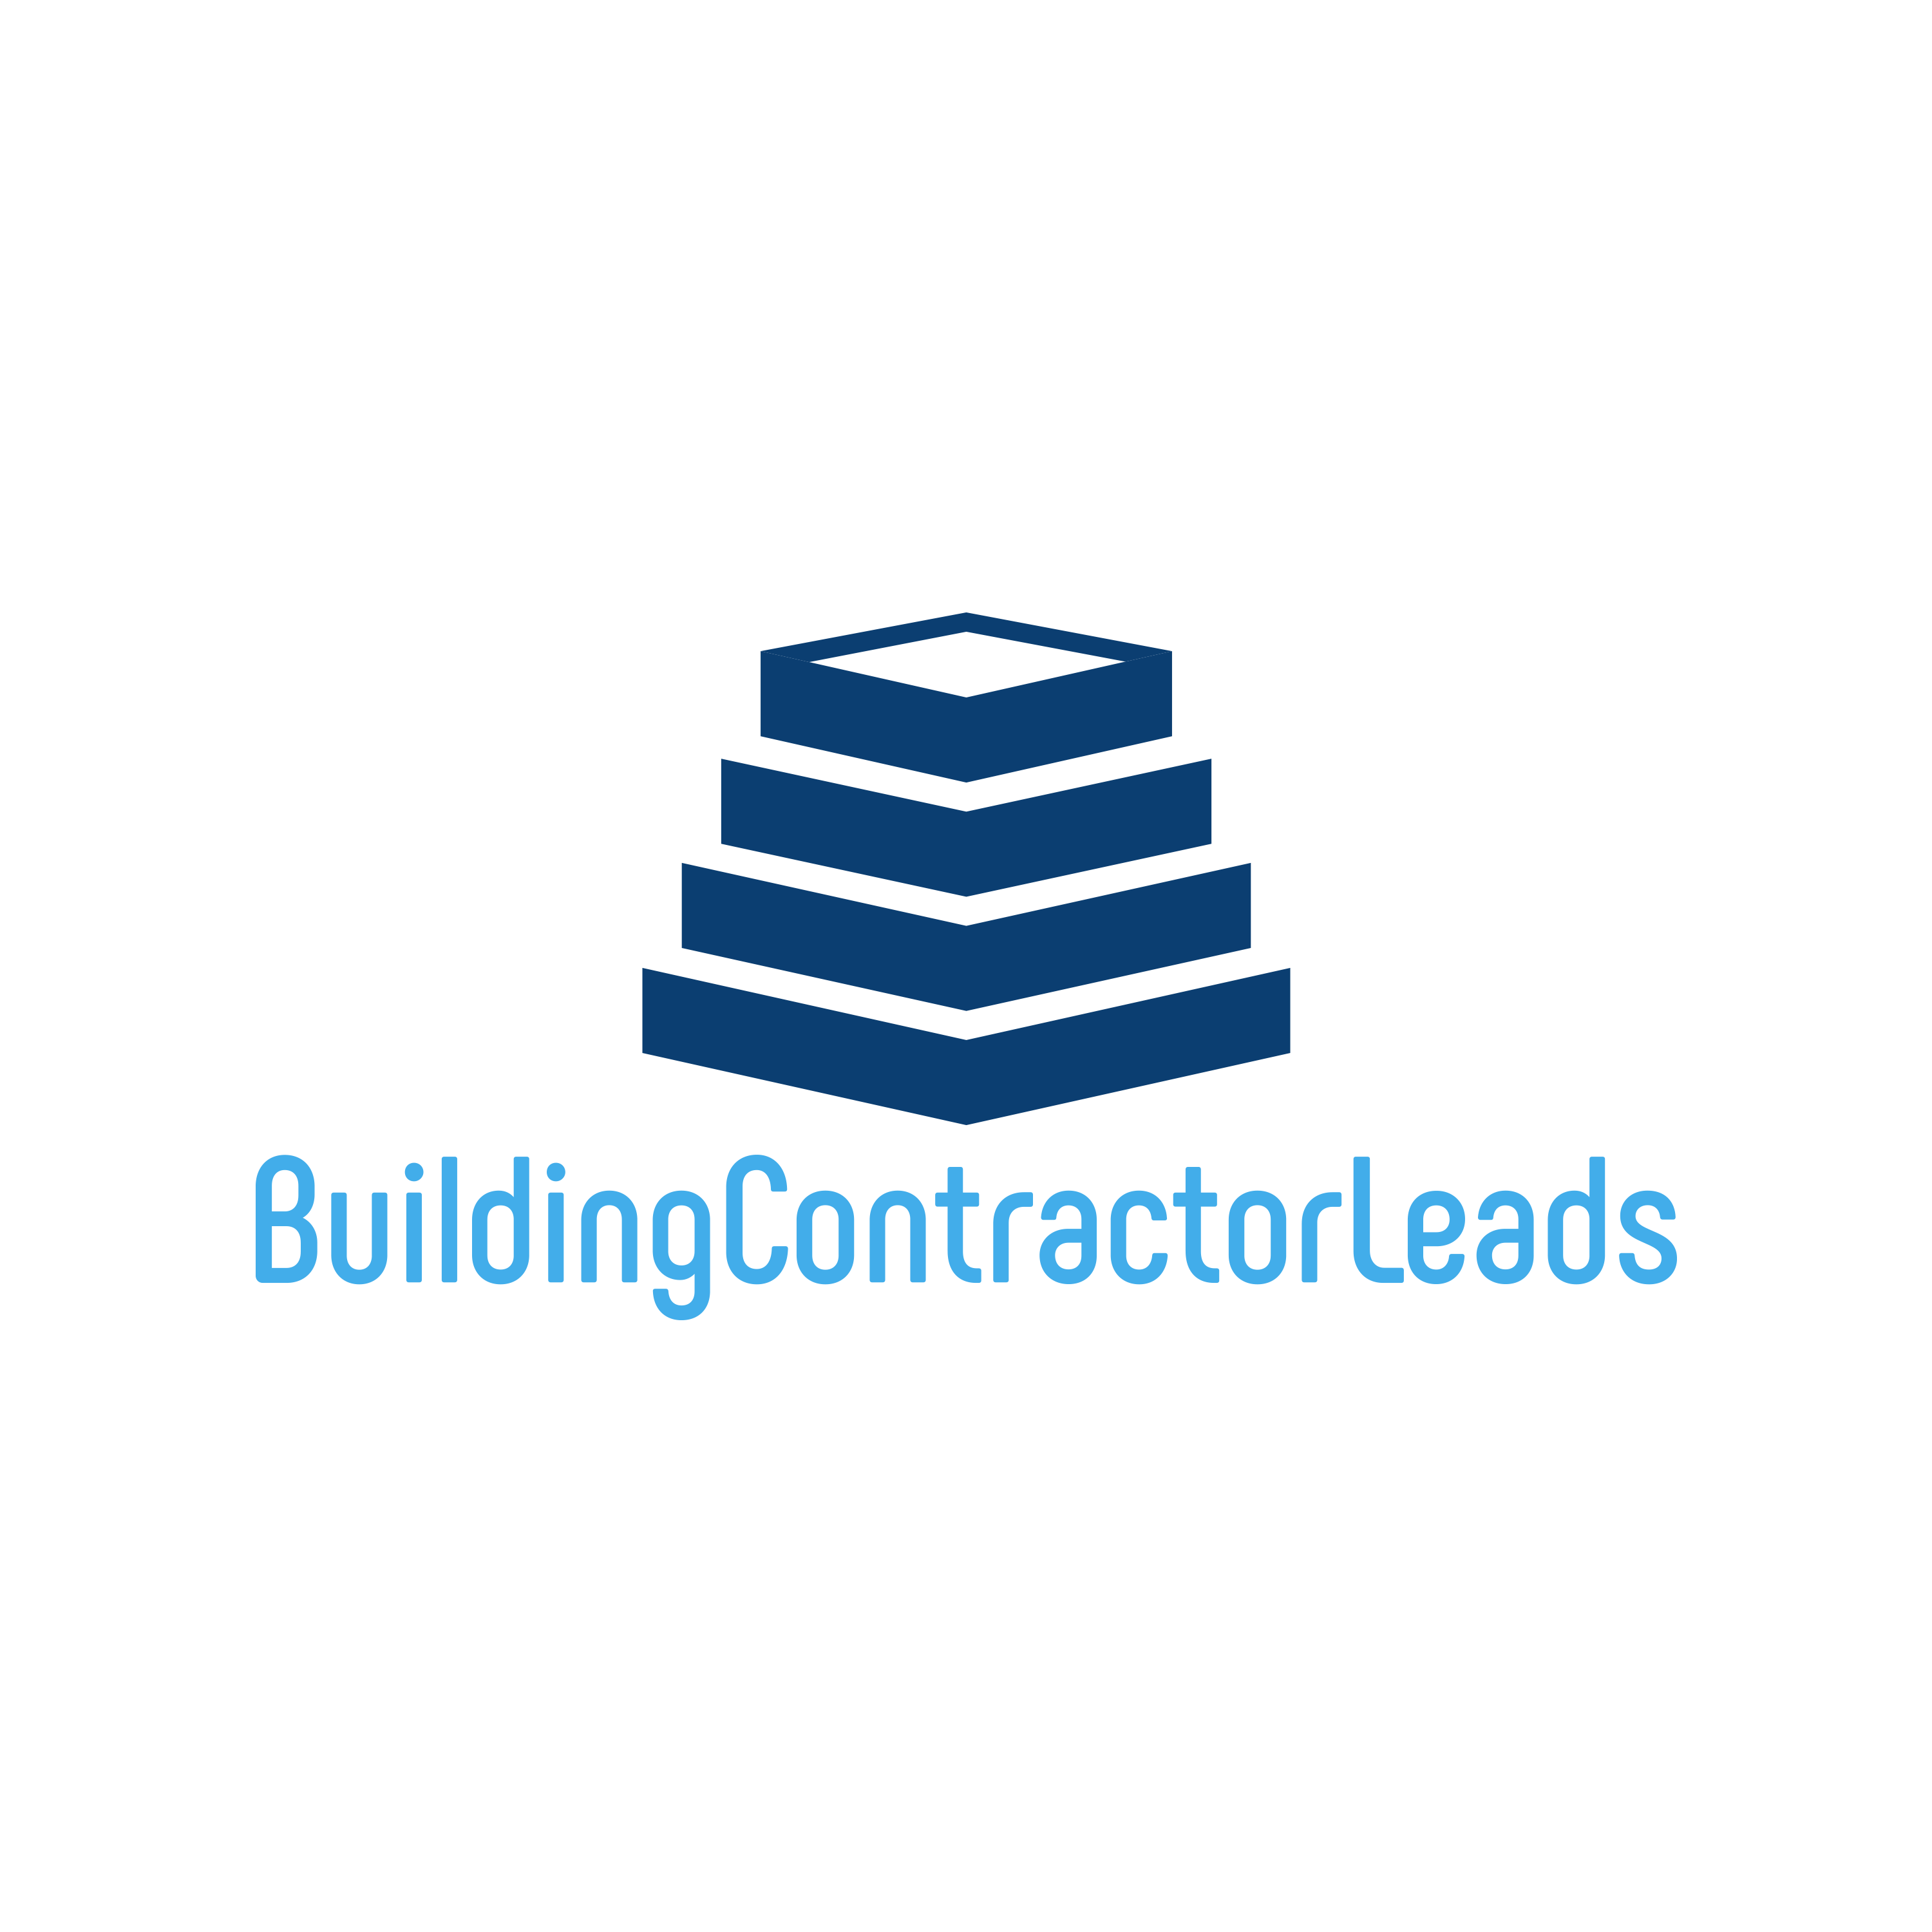 Building Contractor Leads Help Center home page